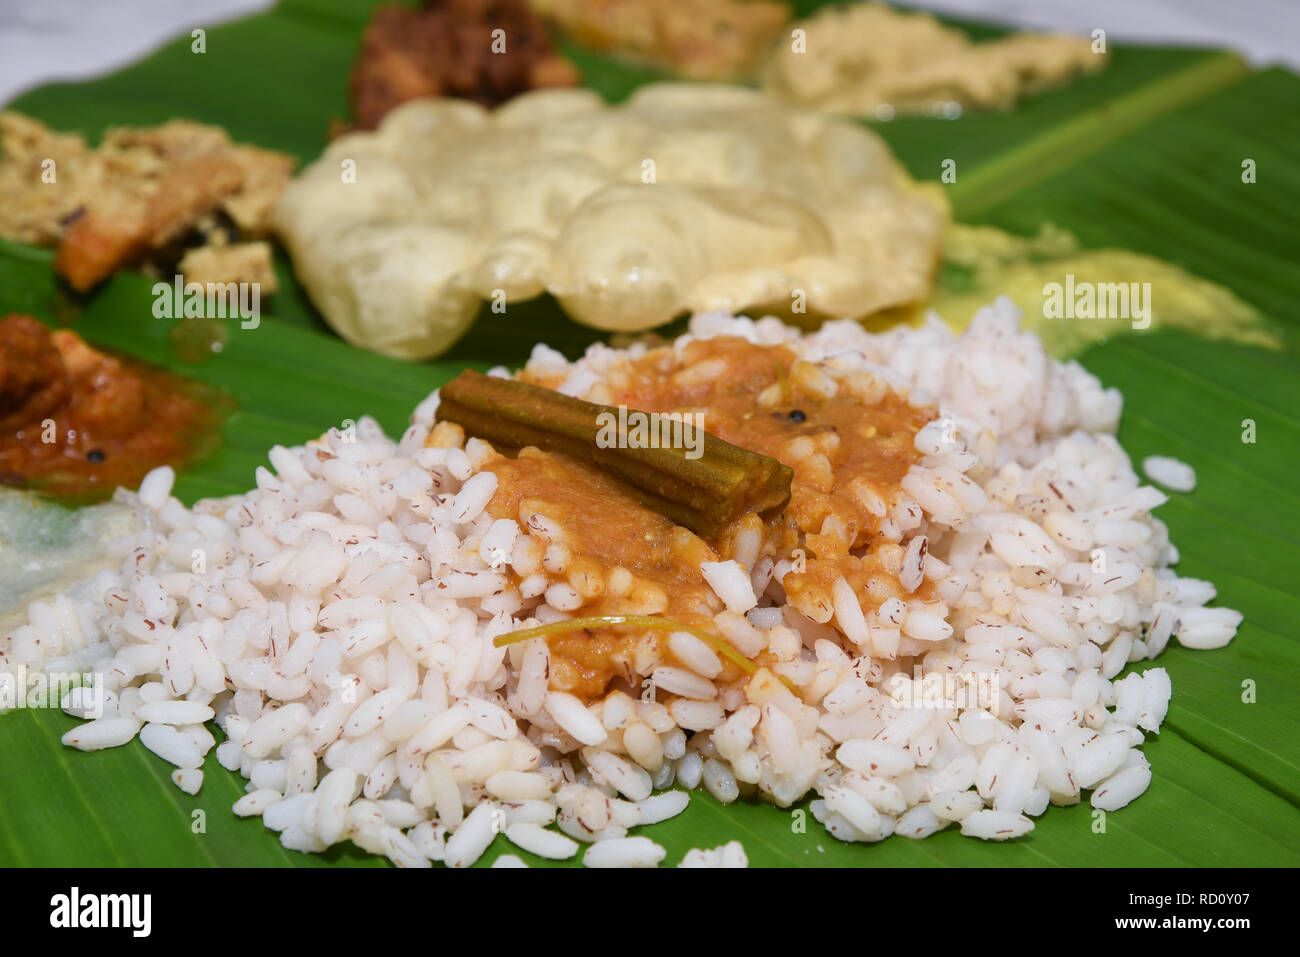 Traditional Onam Sadhya boiled rice served with curries, dessert payasam on banana leaf a grand feast on Onam, Vishu harvest festival of Kerala India - Stock Image